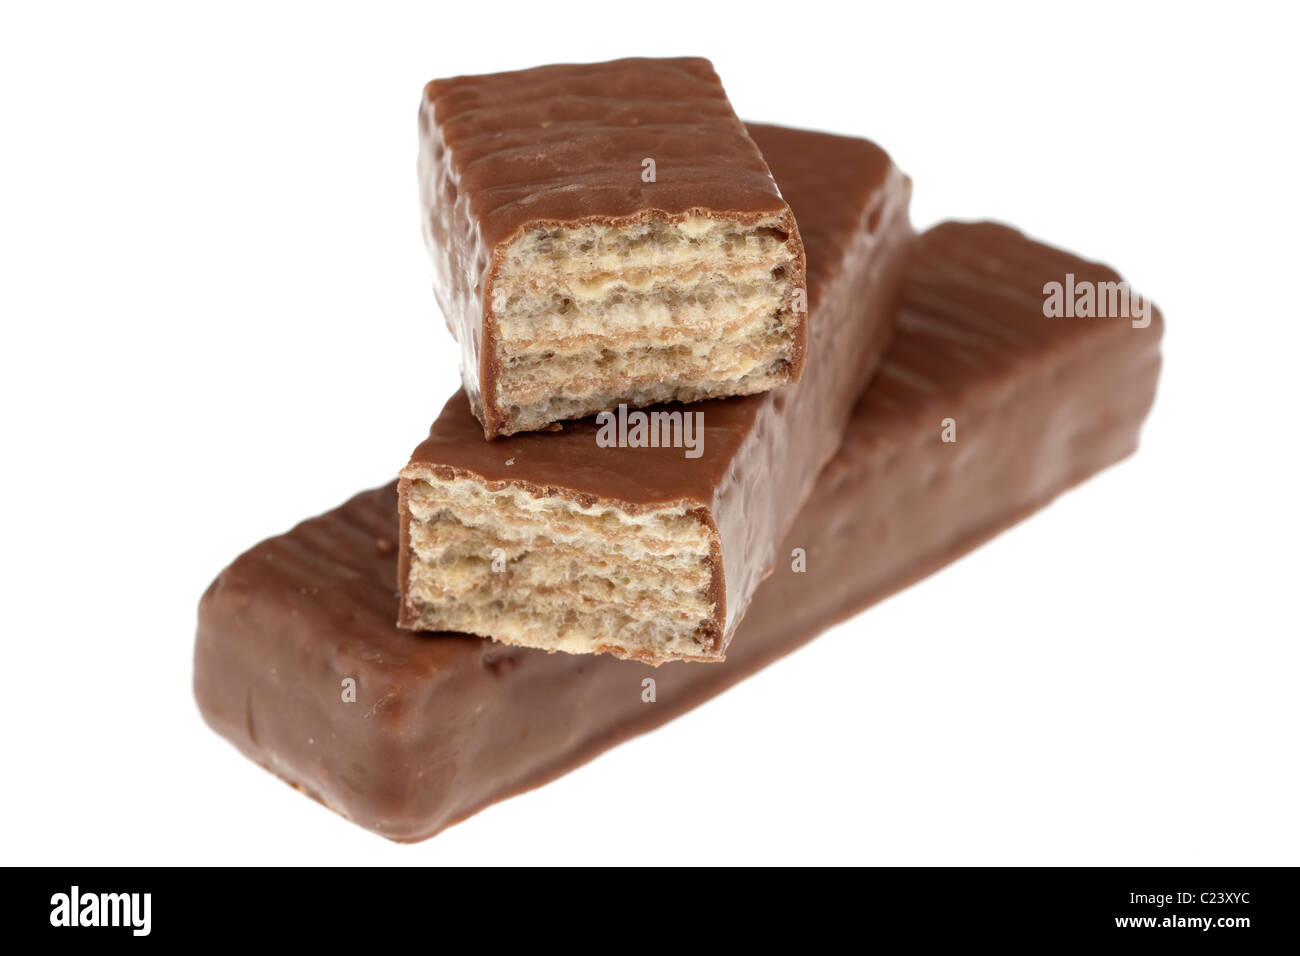 Halved Blue Riband chocolate covered wafer biscuits - Stock Image